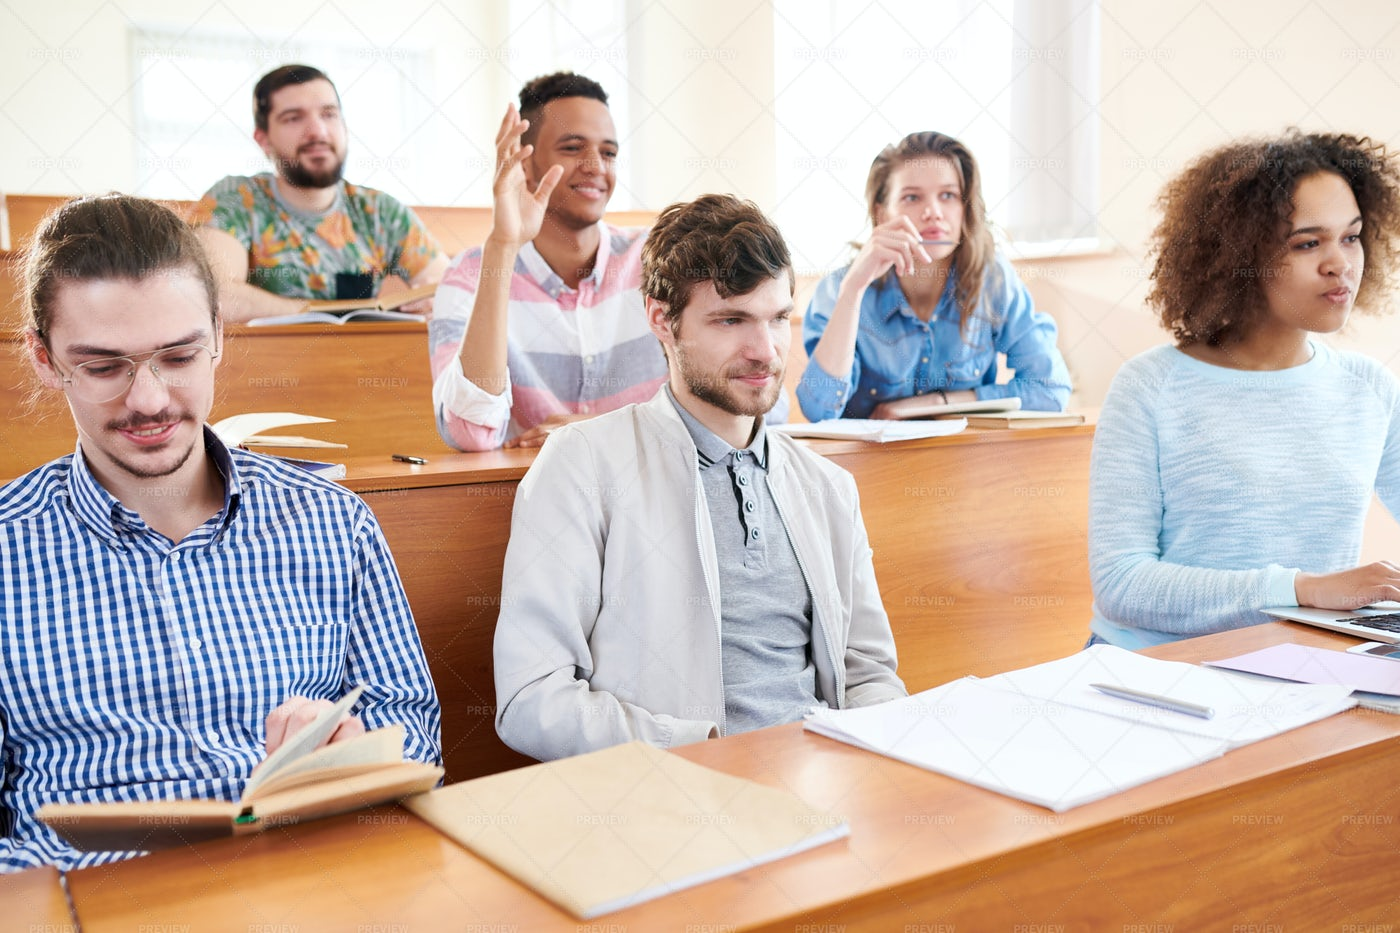 Studying At School: Stock Photos